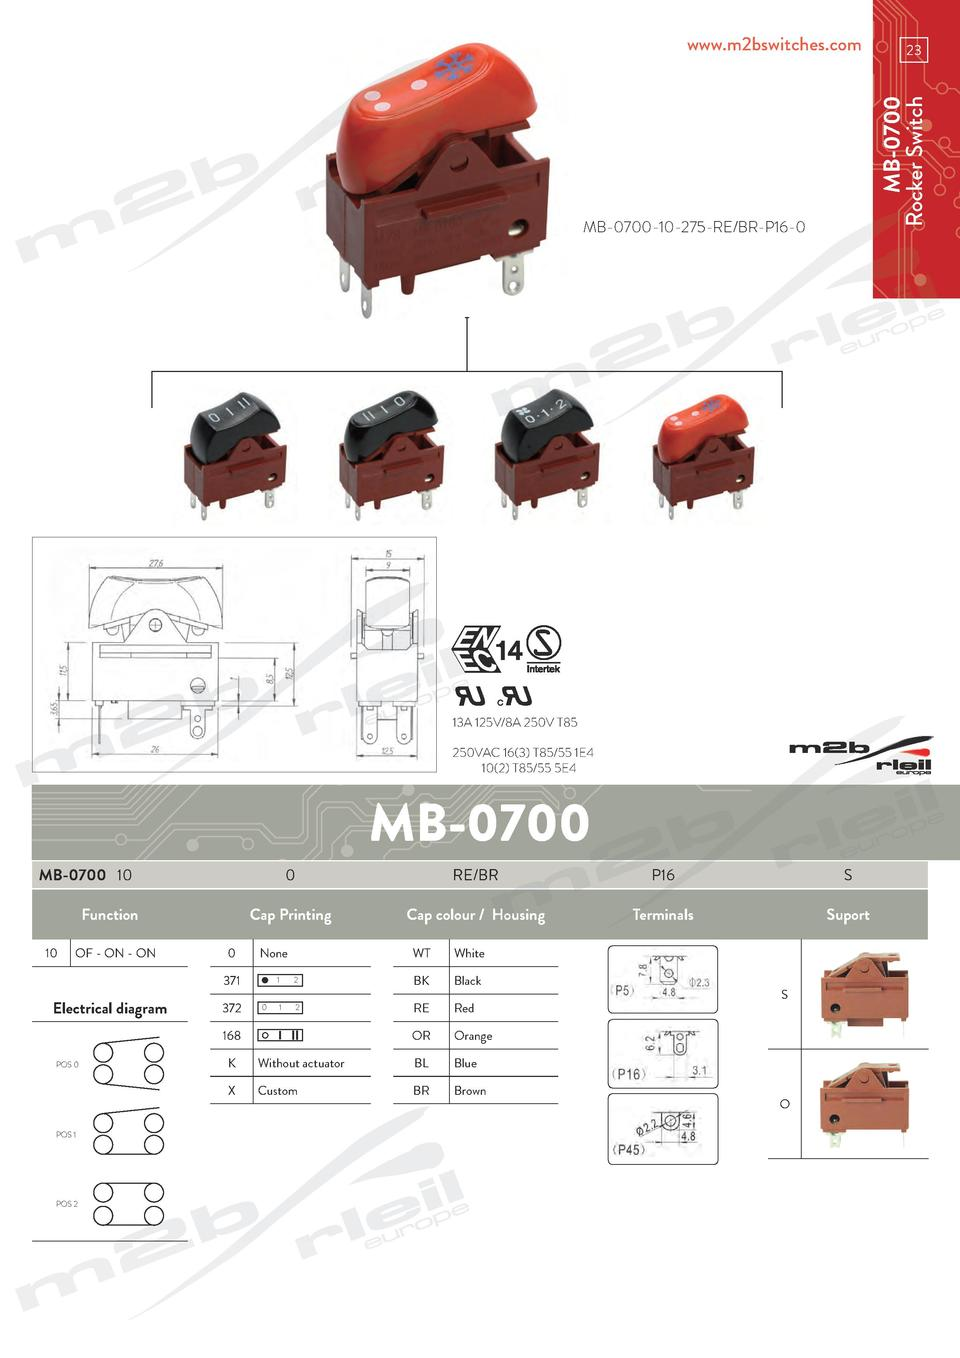 MB-0700-10-275-RE BR-P16-0  13A 125V 8A 250V T85 250VAC 16 3  T85 55 1E4   10 2  T85 55 5E4  MB-0700 MB-0700 10 Function 1...